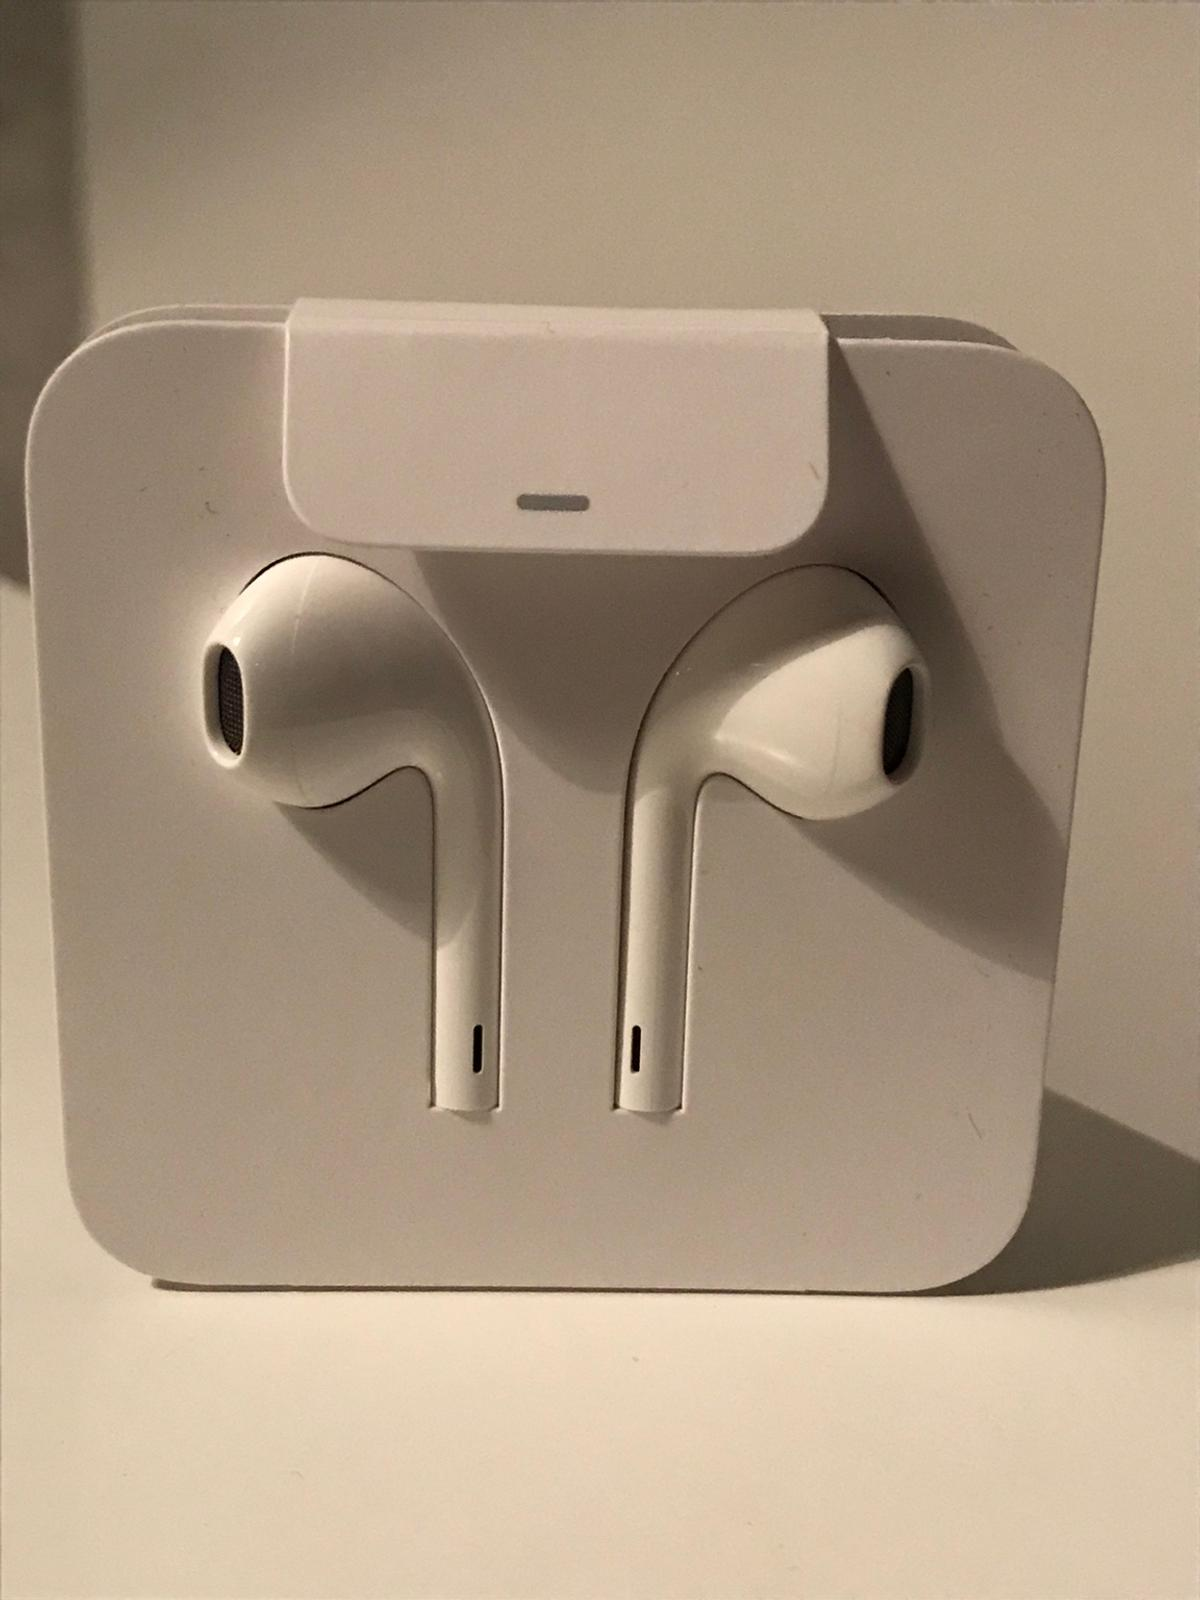 Unused EarPods for iPhone 7 and upwards.